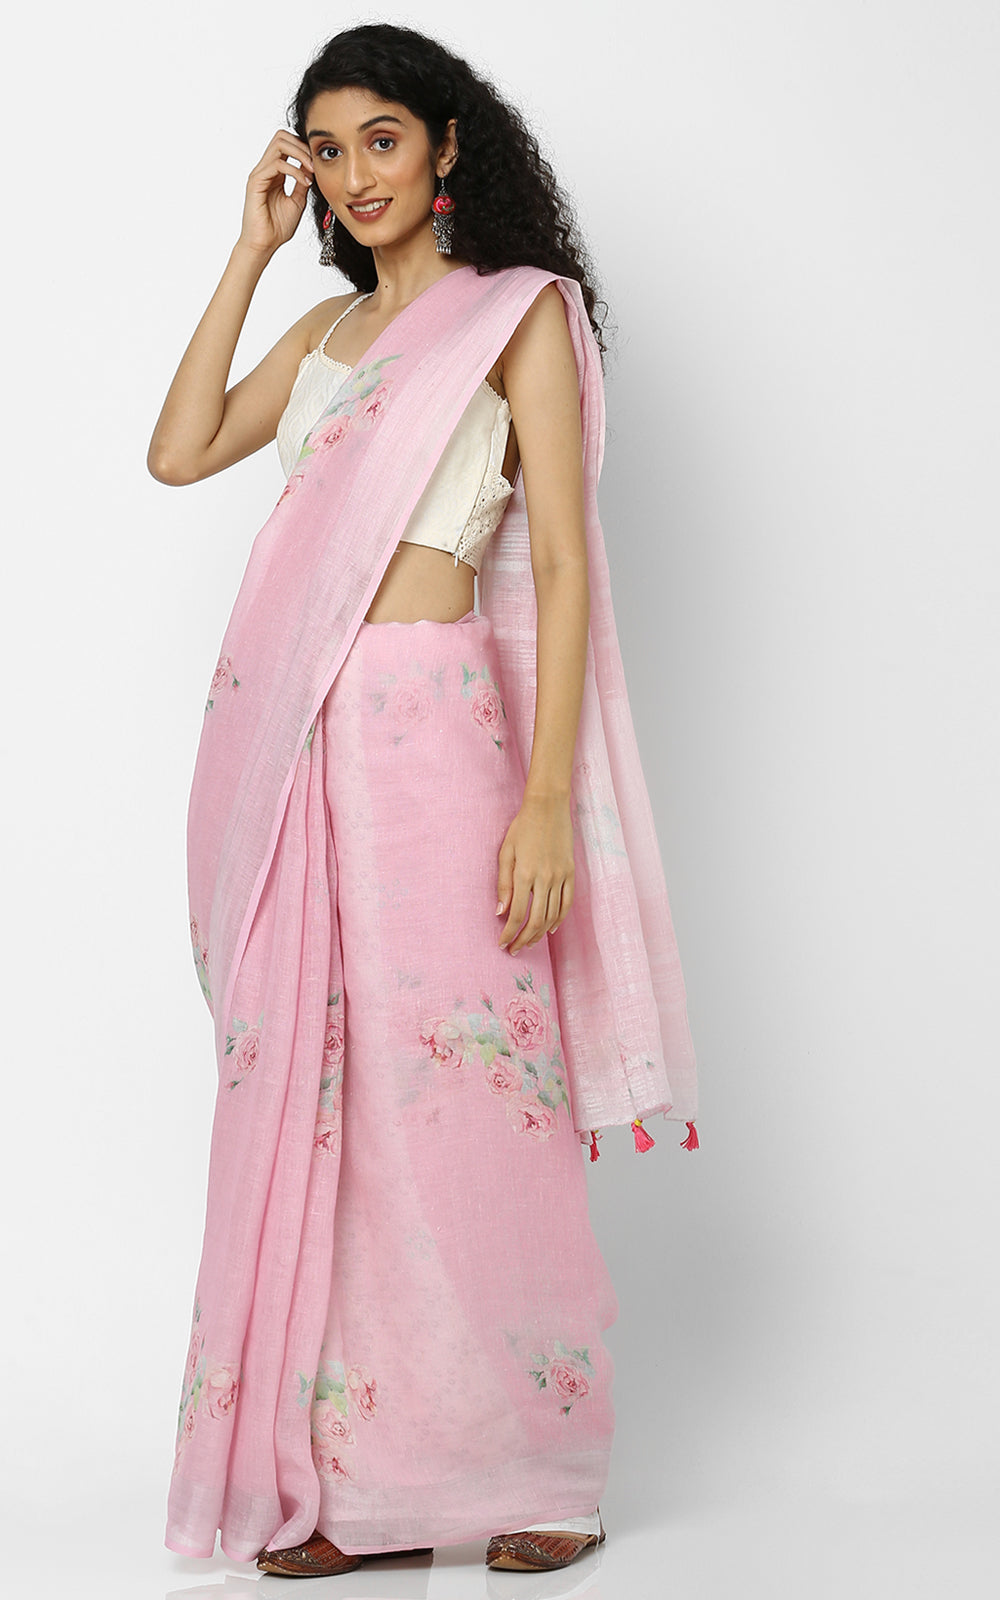 PINK LINEN SAREE WITH CLUSTERS